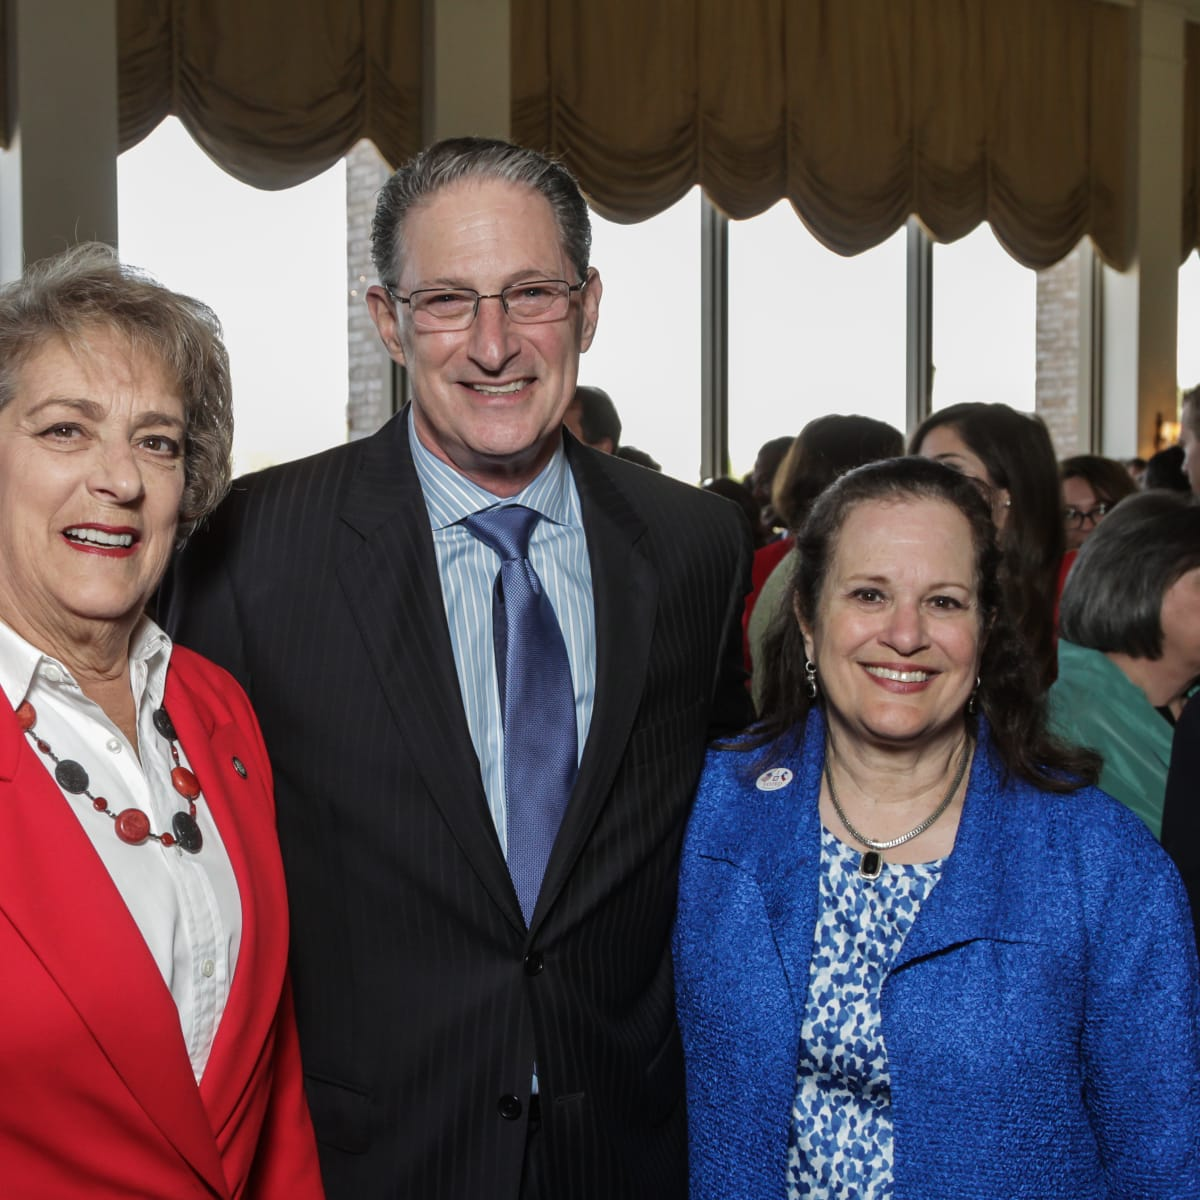 HSPVA luncheon, Feb. 2016, Ellen Cohen, Jeff Bricker, Laurie Bricker